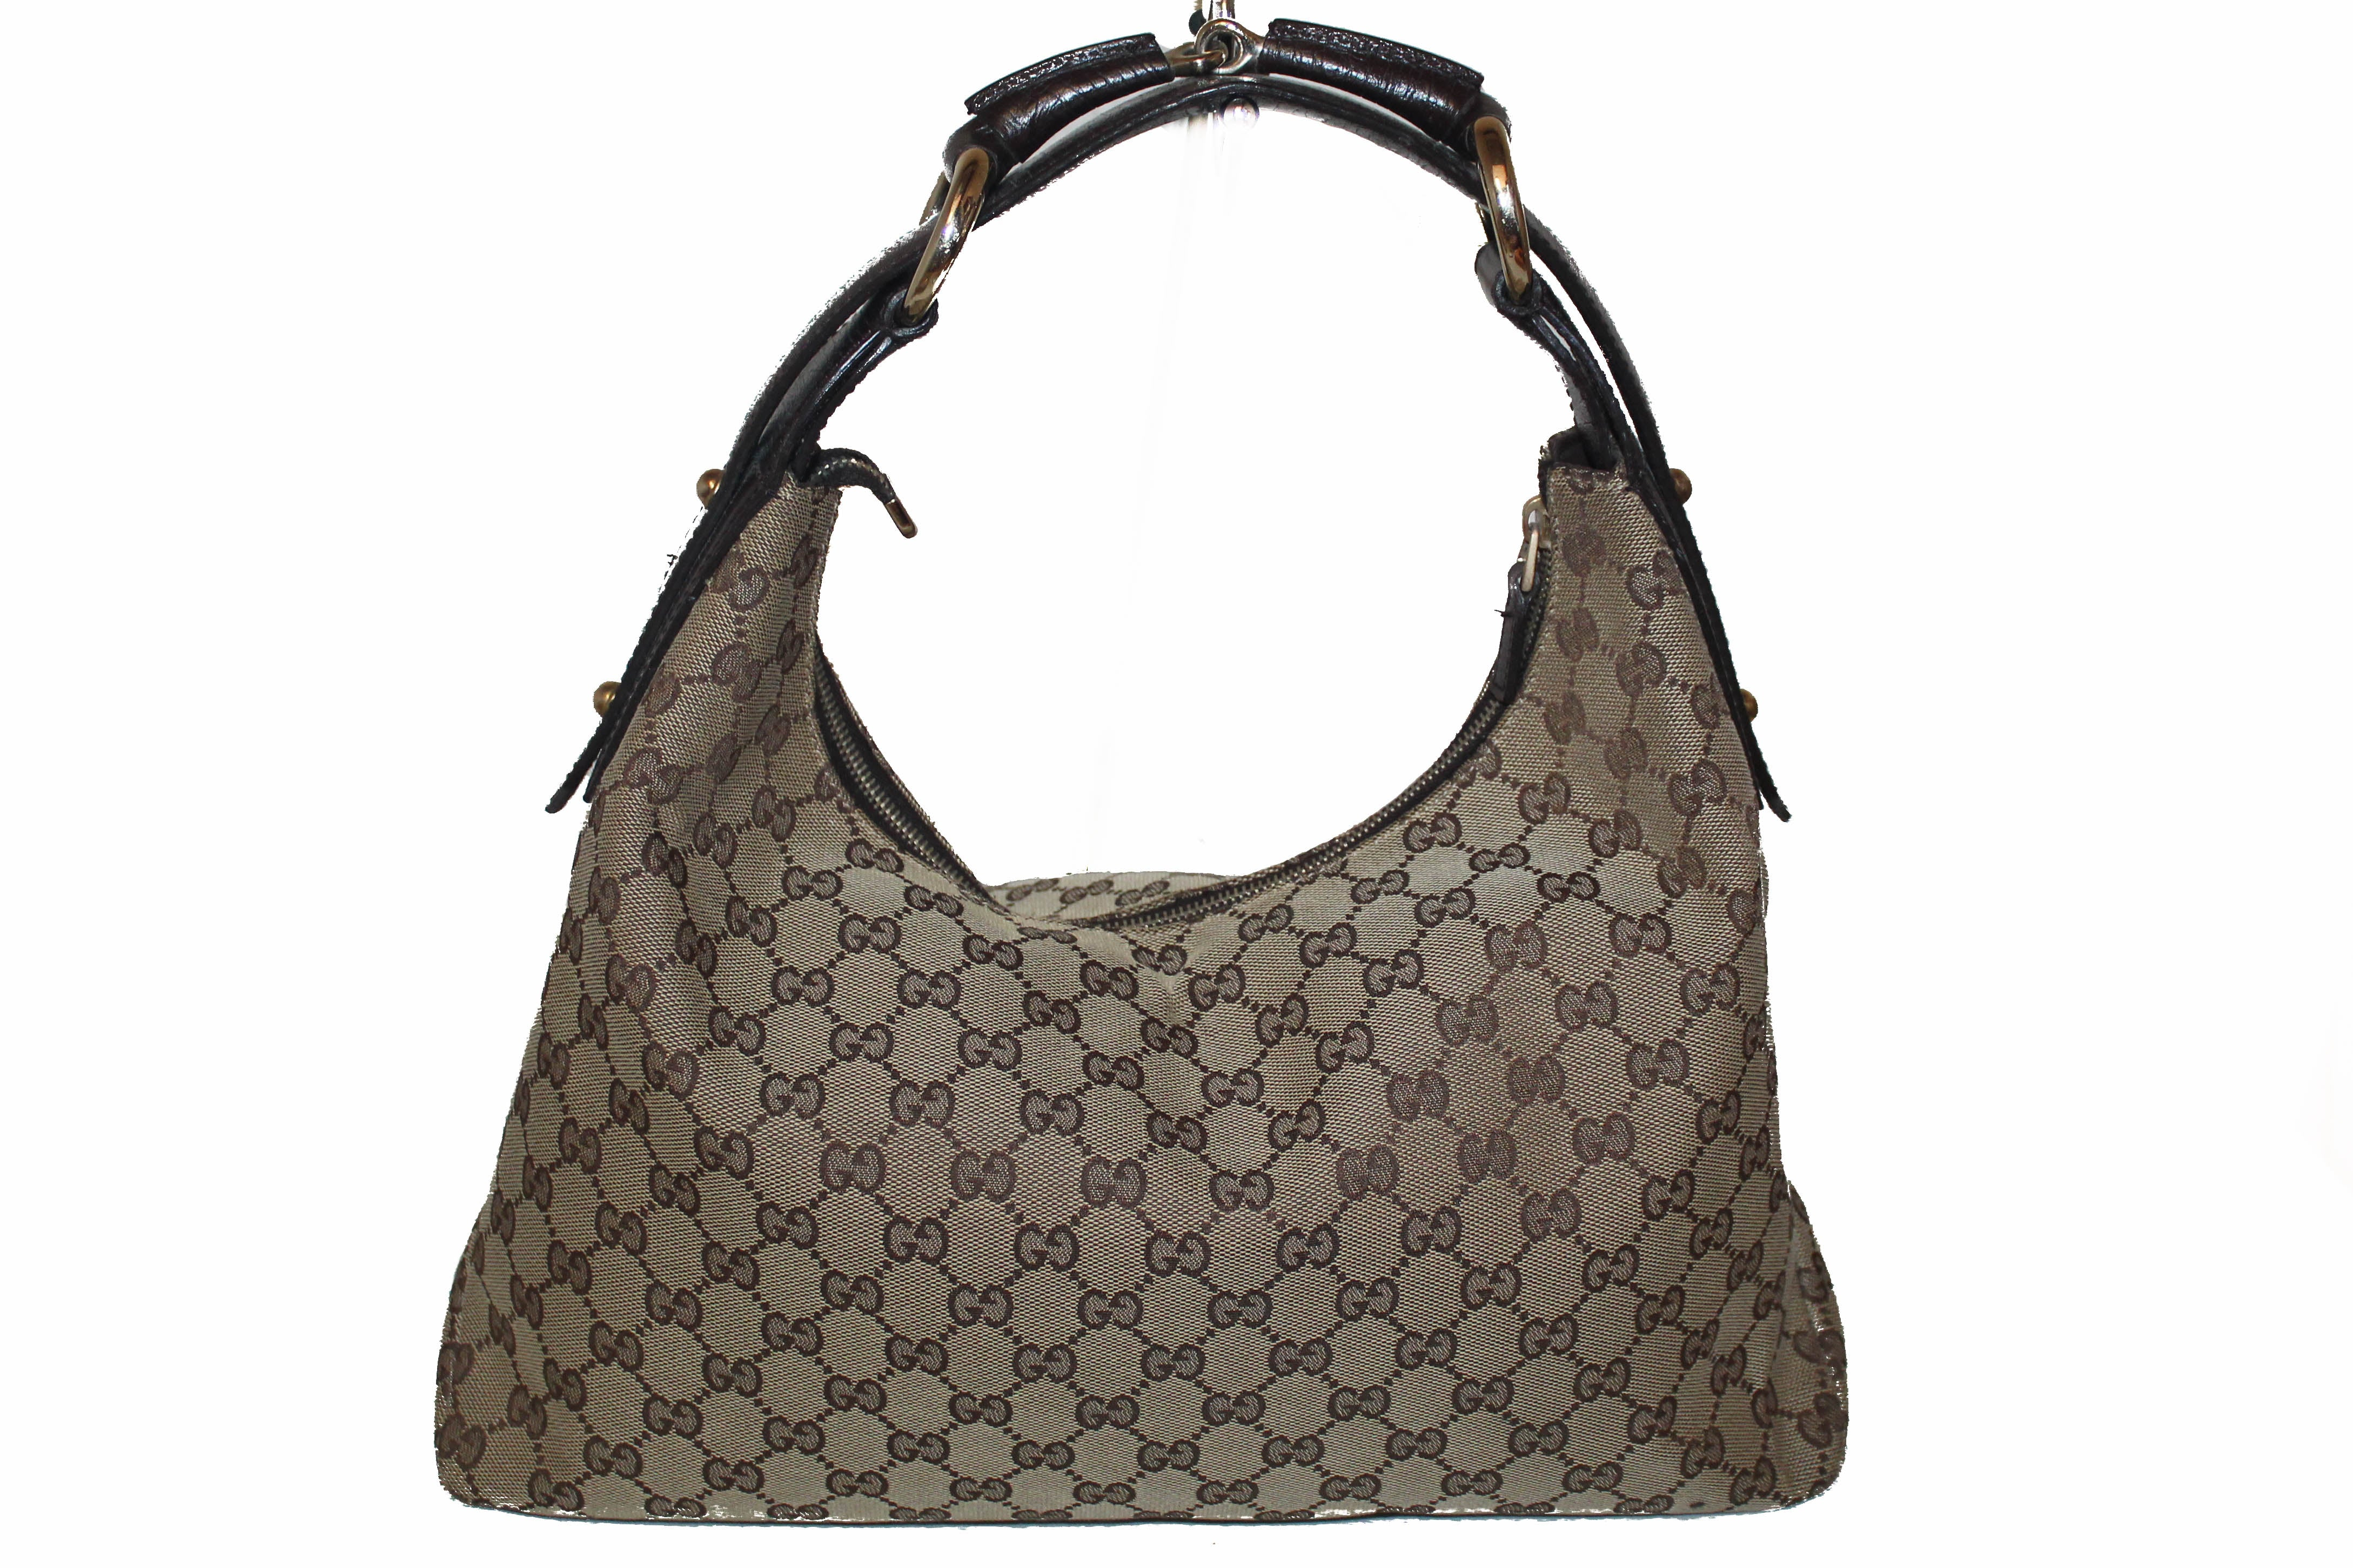 Authentic Gucci Brown GG with Brown Leather Horsebit Hobo Shoulder Bag